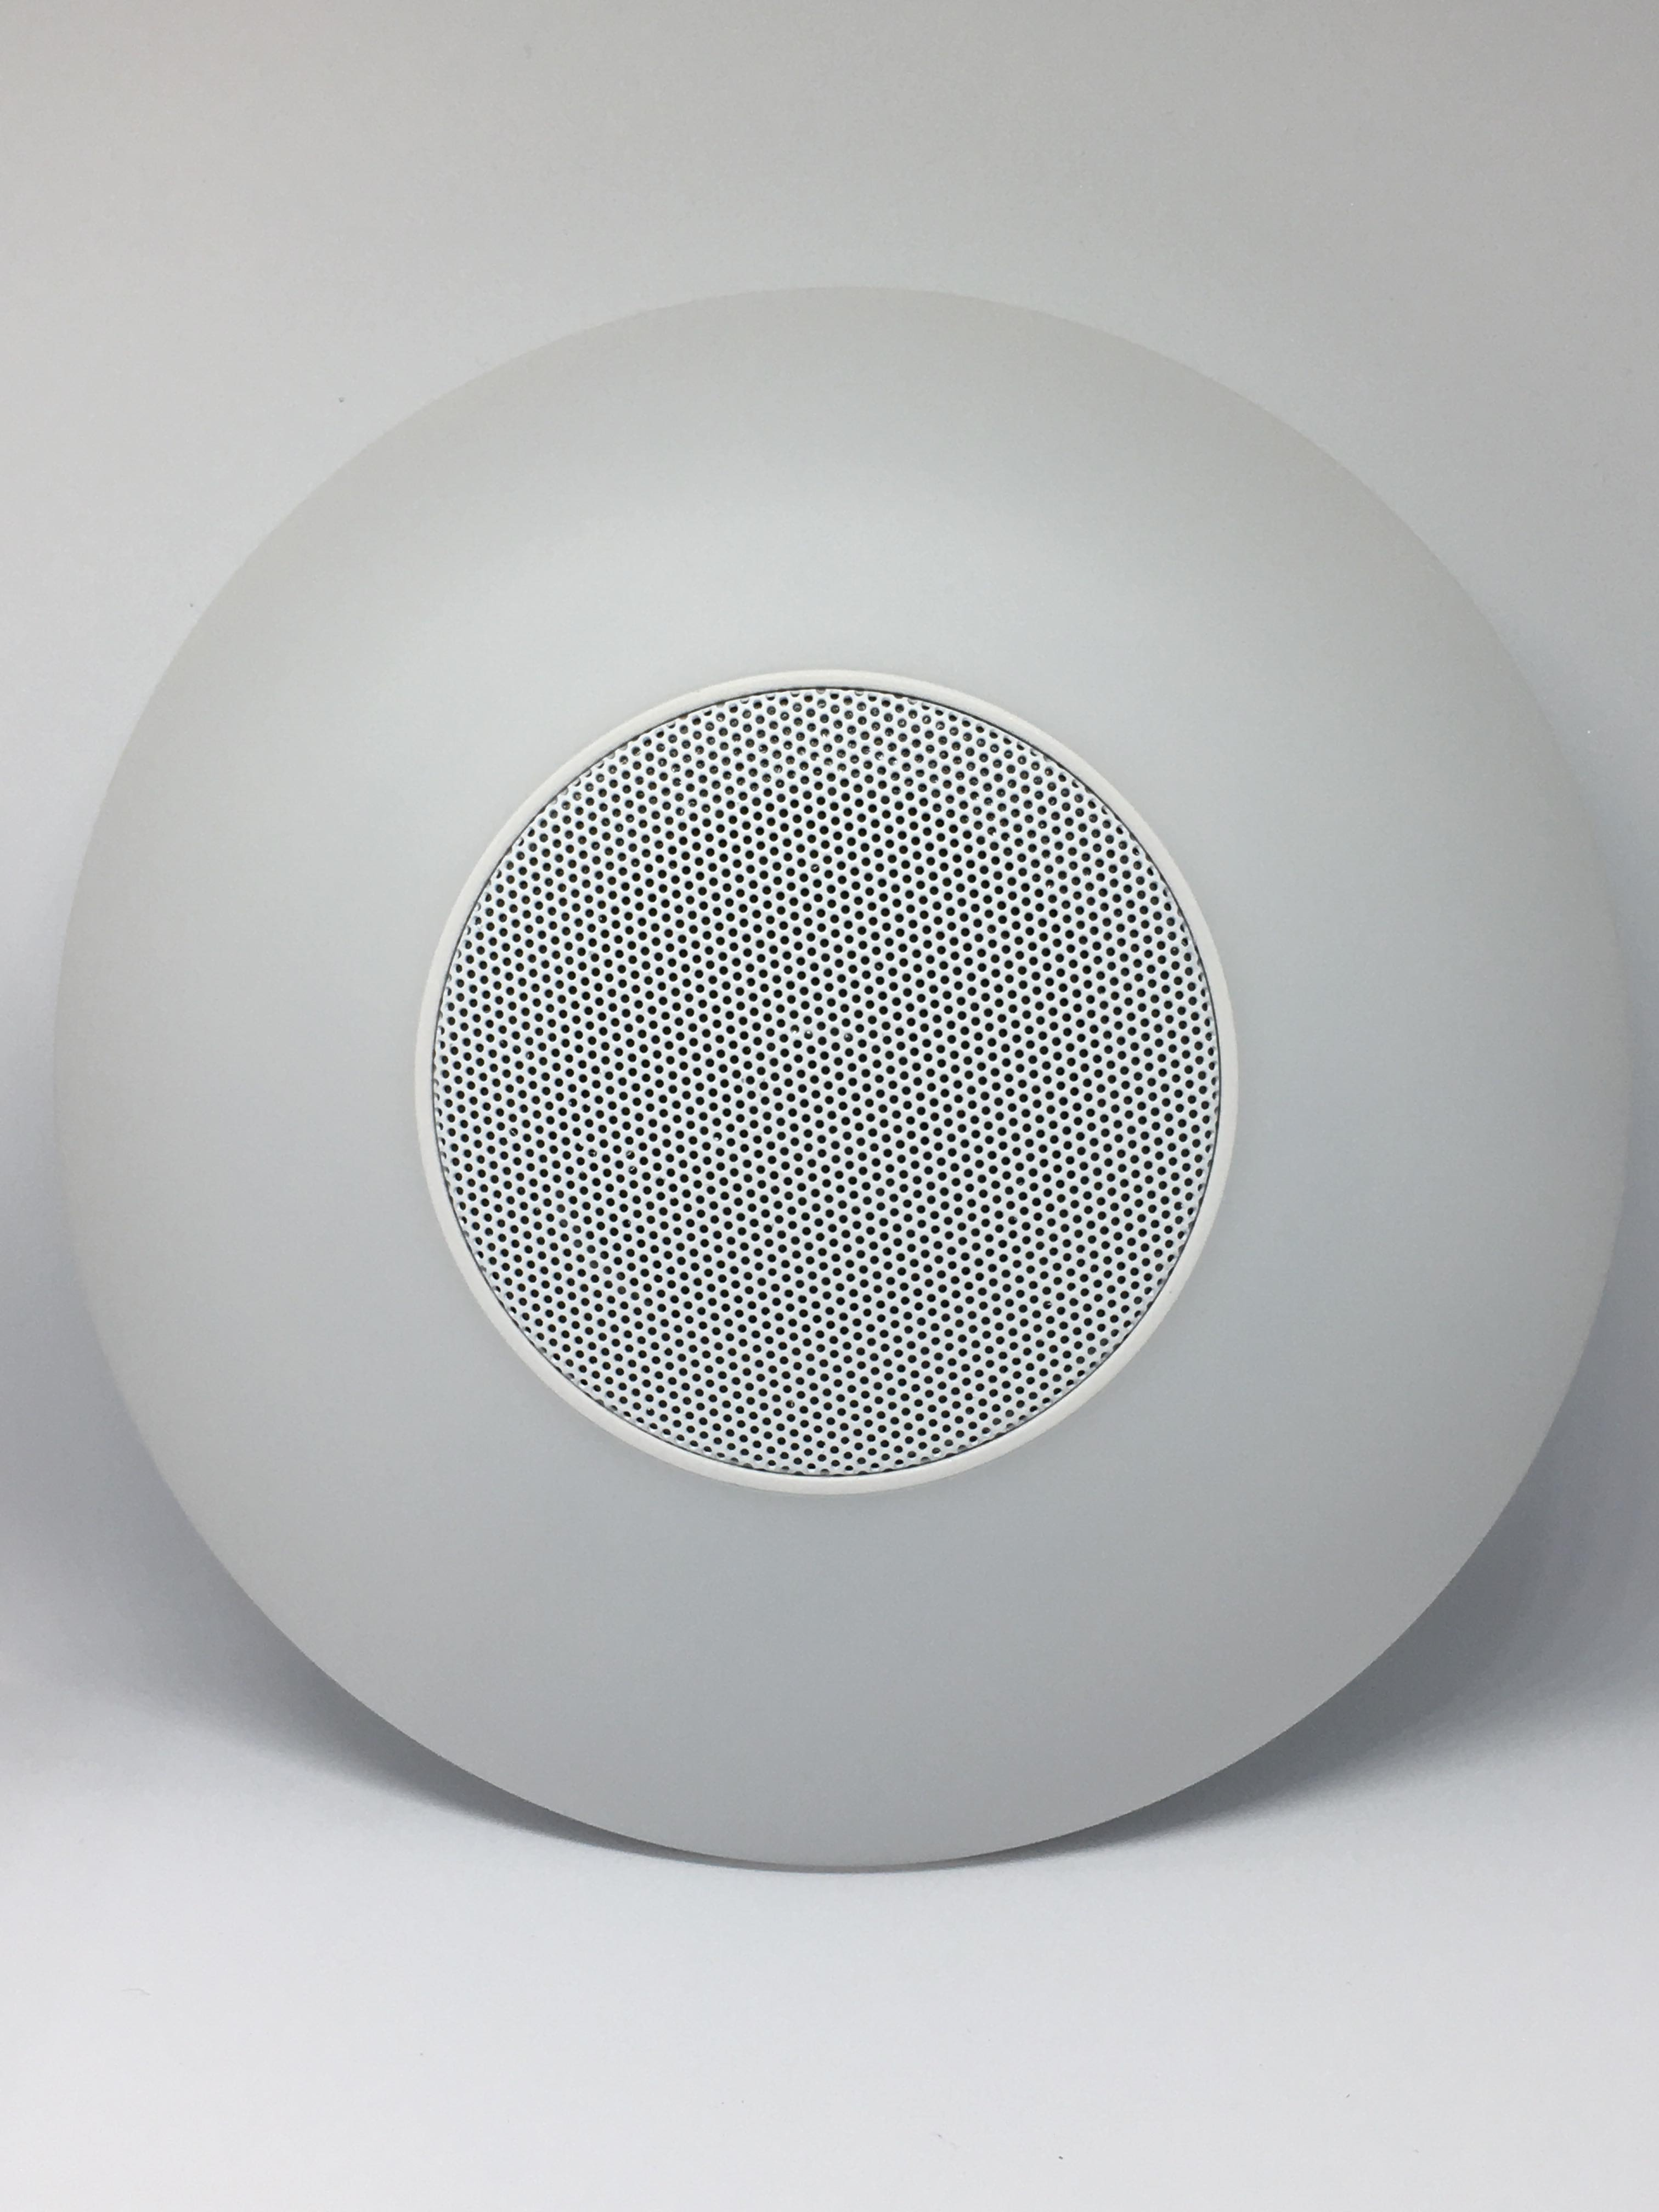 Front of the speaker